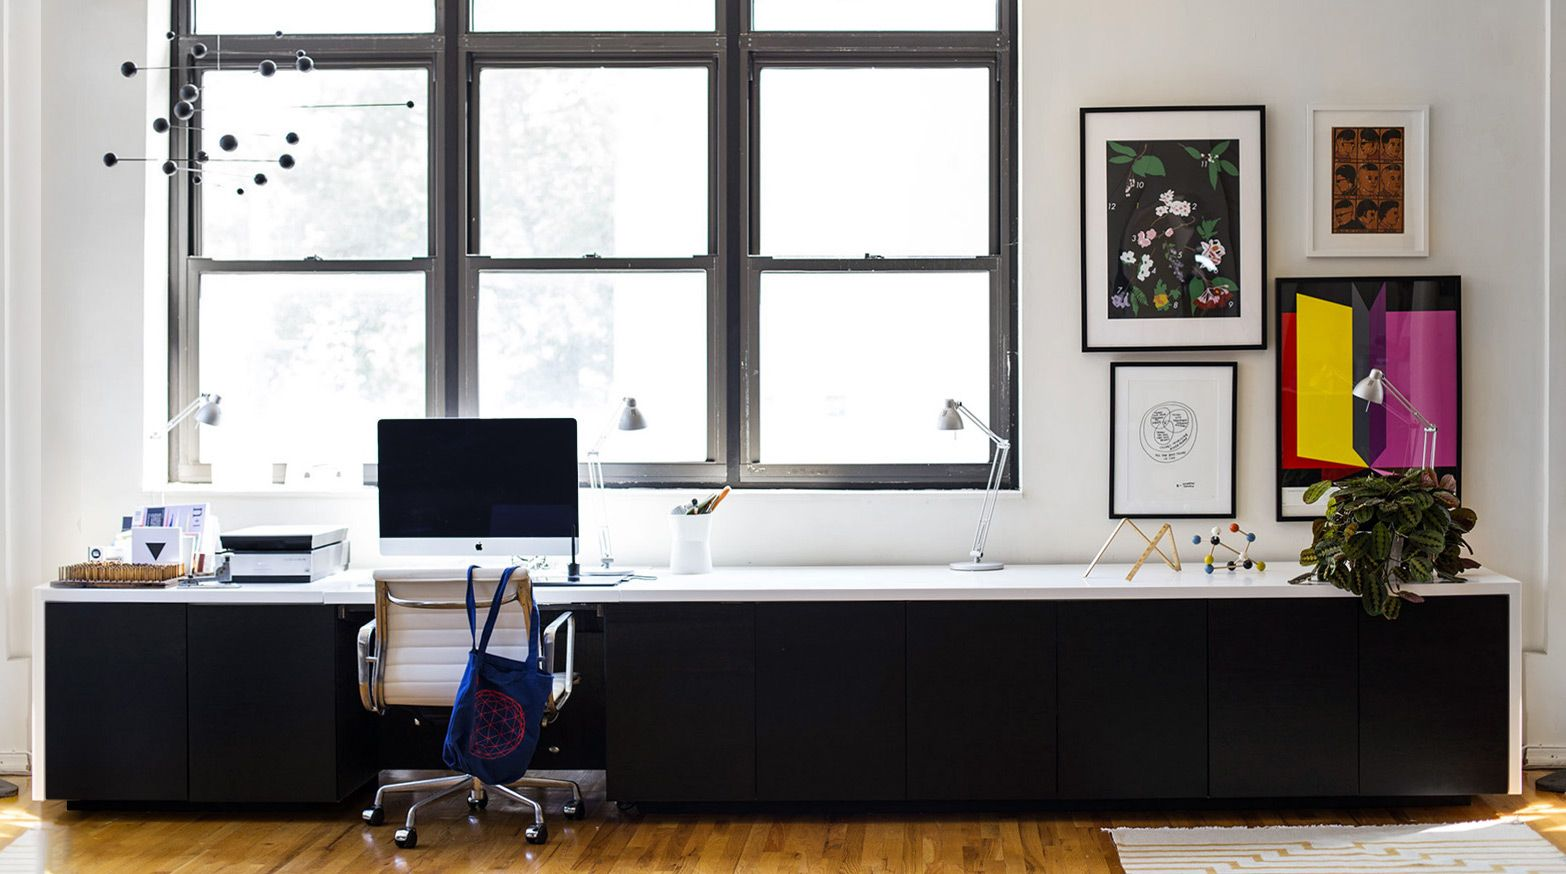 Build A Motorized Convertible Standing Desk From Ikea Storage Cabinets Better To Have Options Than Be Stuck With Just Sitting Or